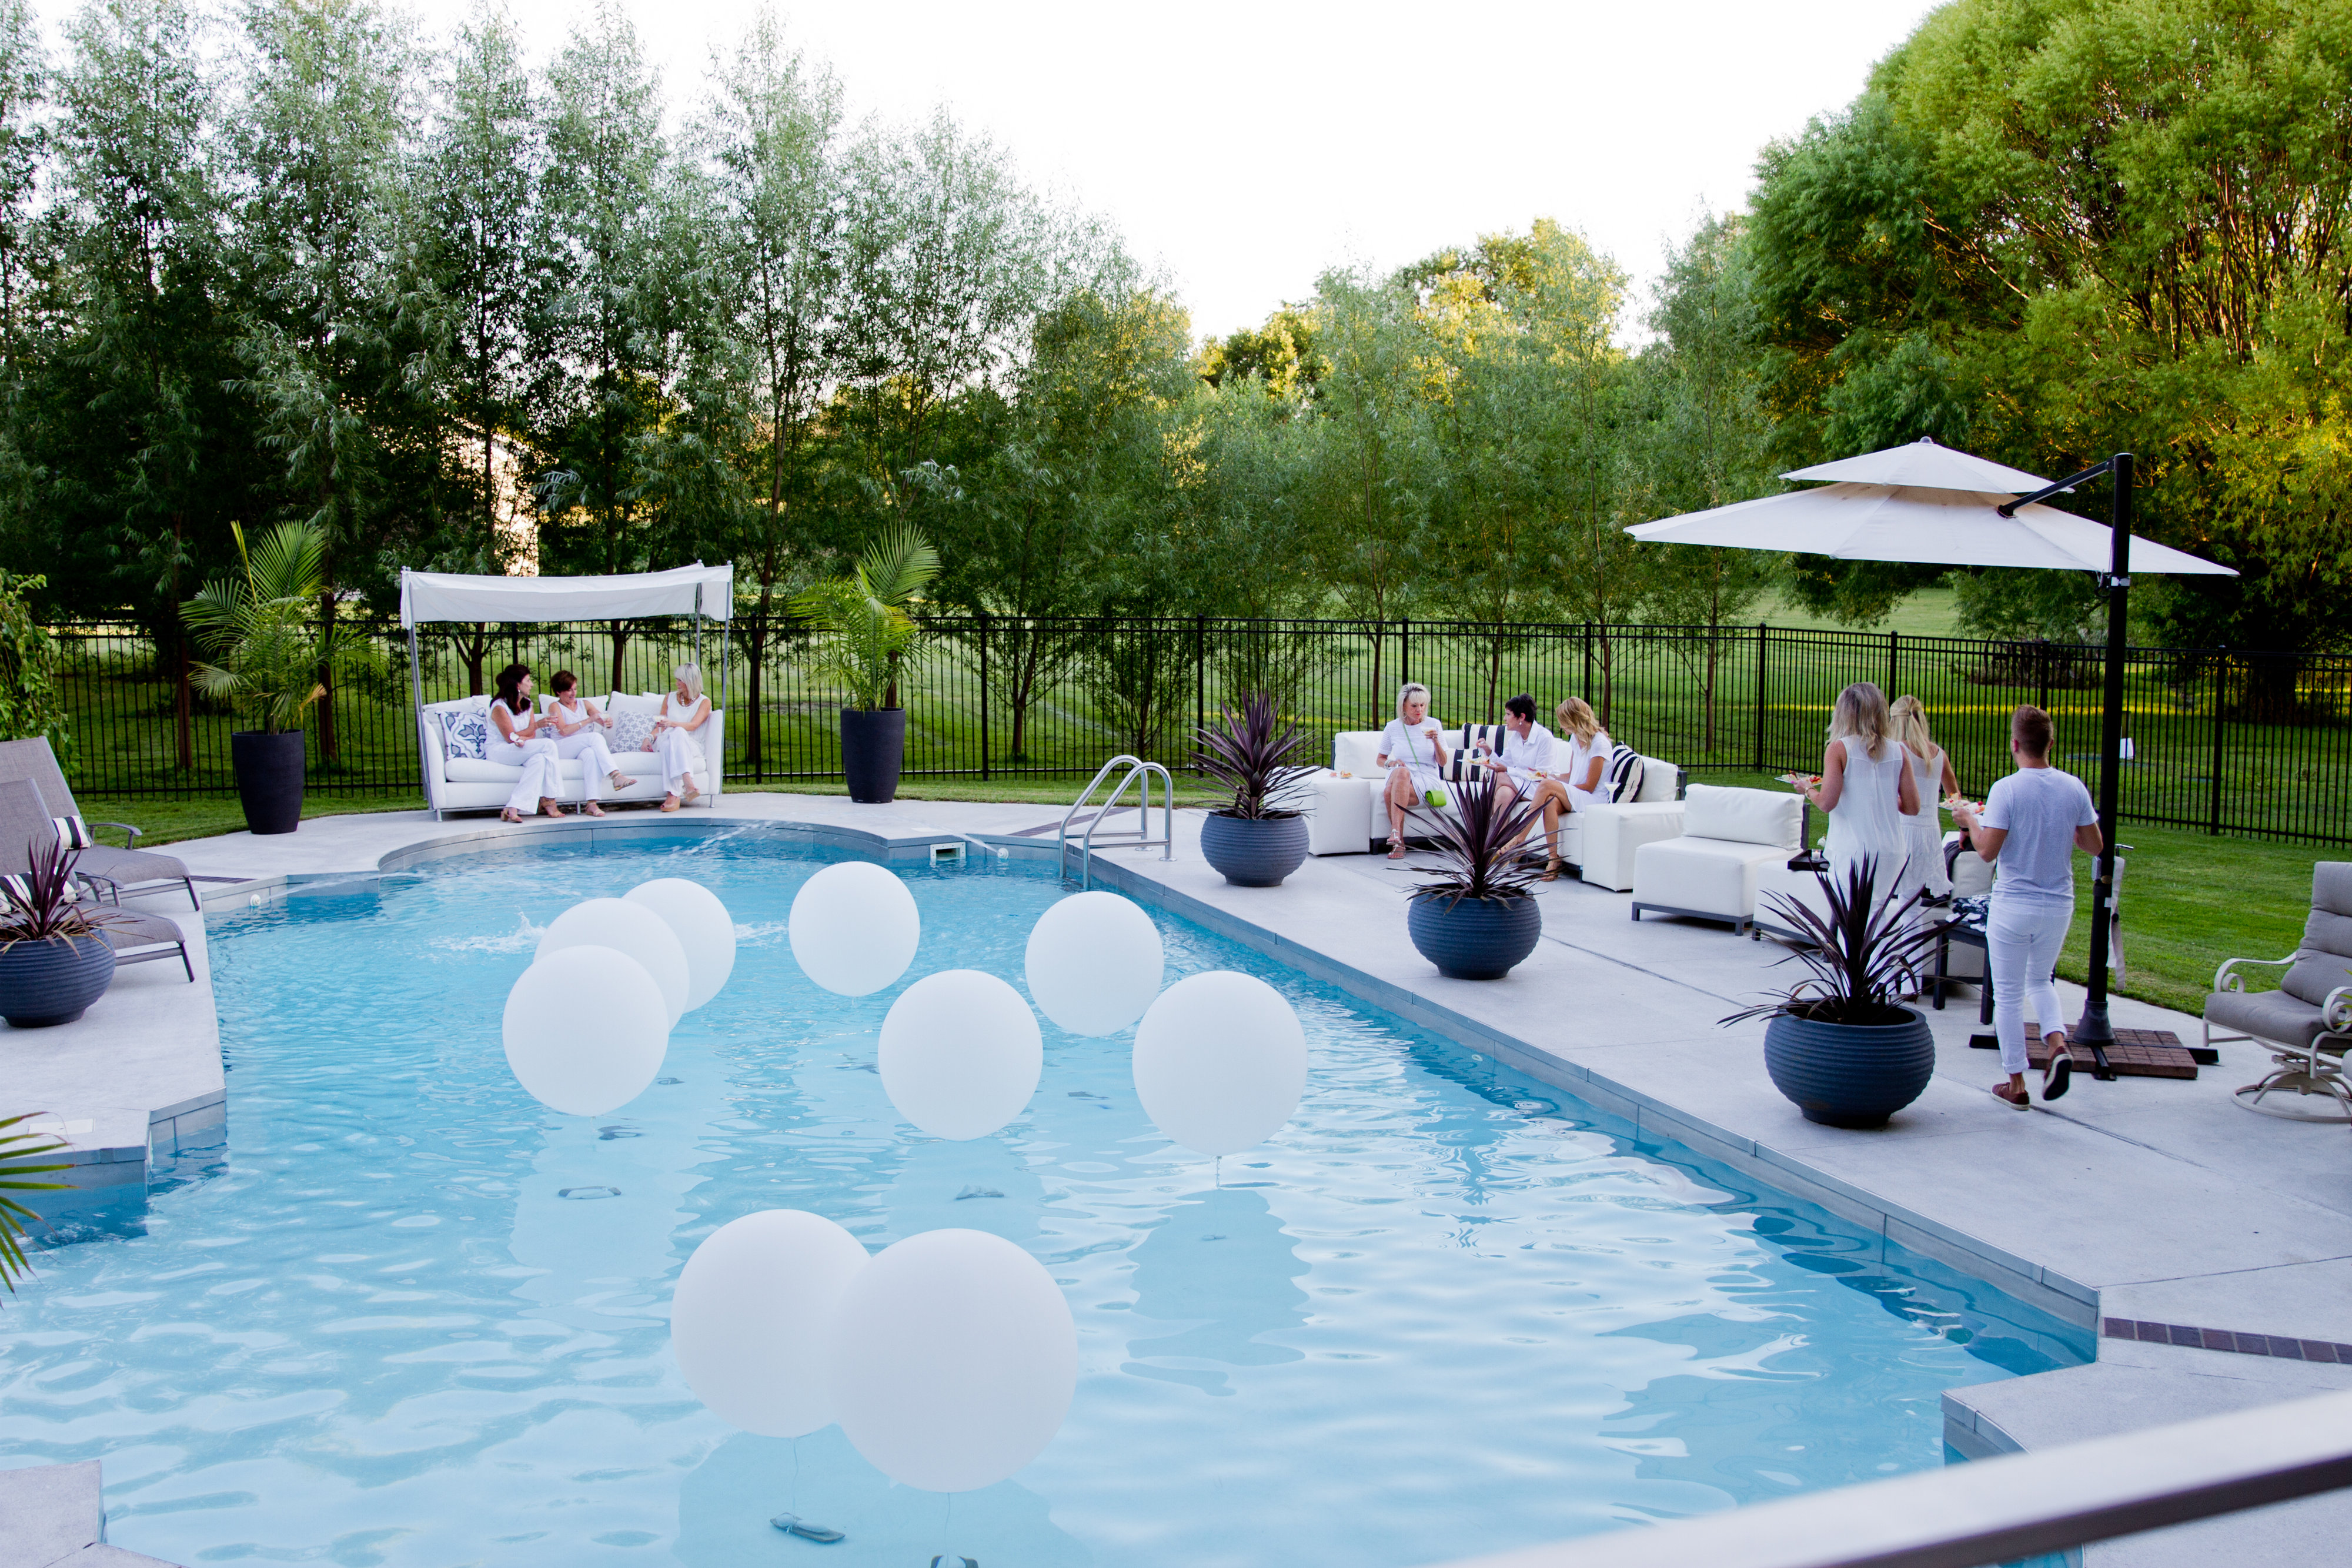 Their All White Outfits And The Back Yard Provided Sorts Of Comfortable Seating That Allowed Us To Relax By Poolenjoying Each Others Company